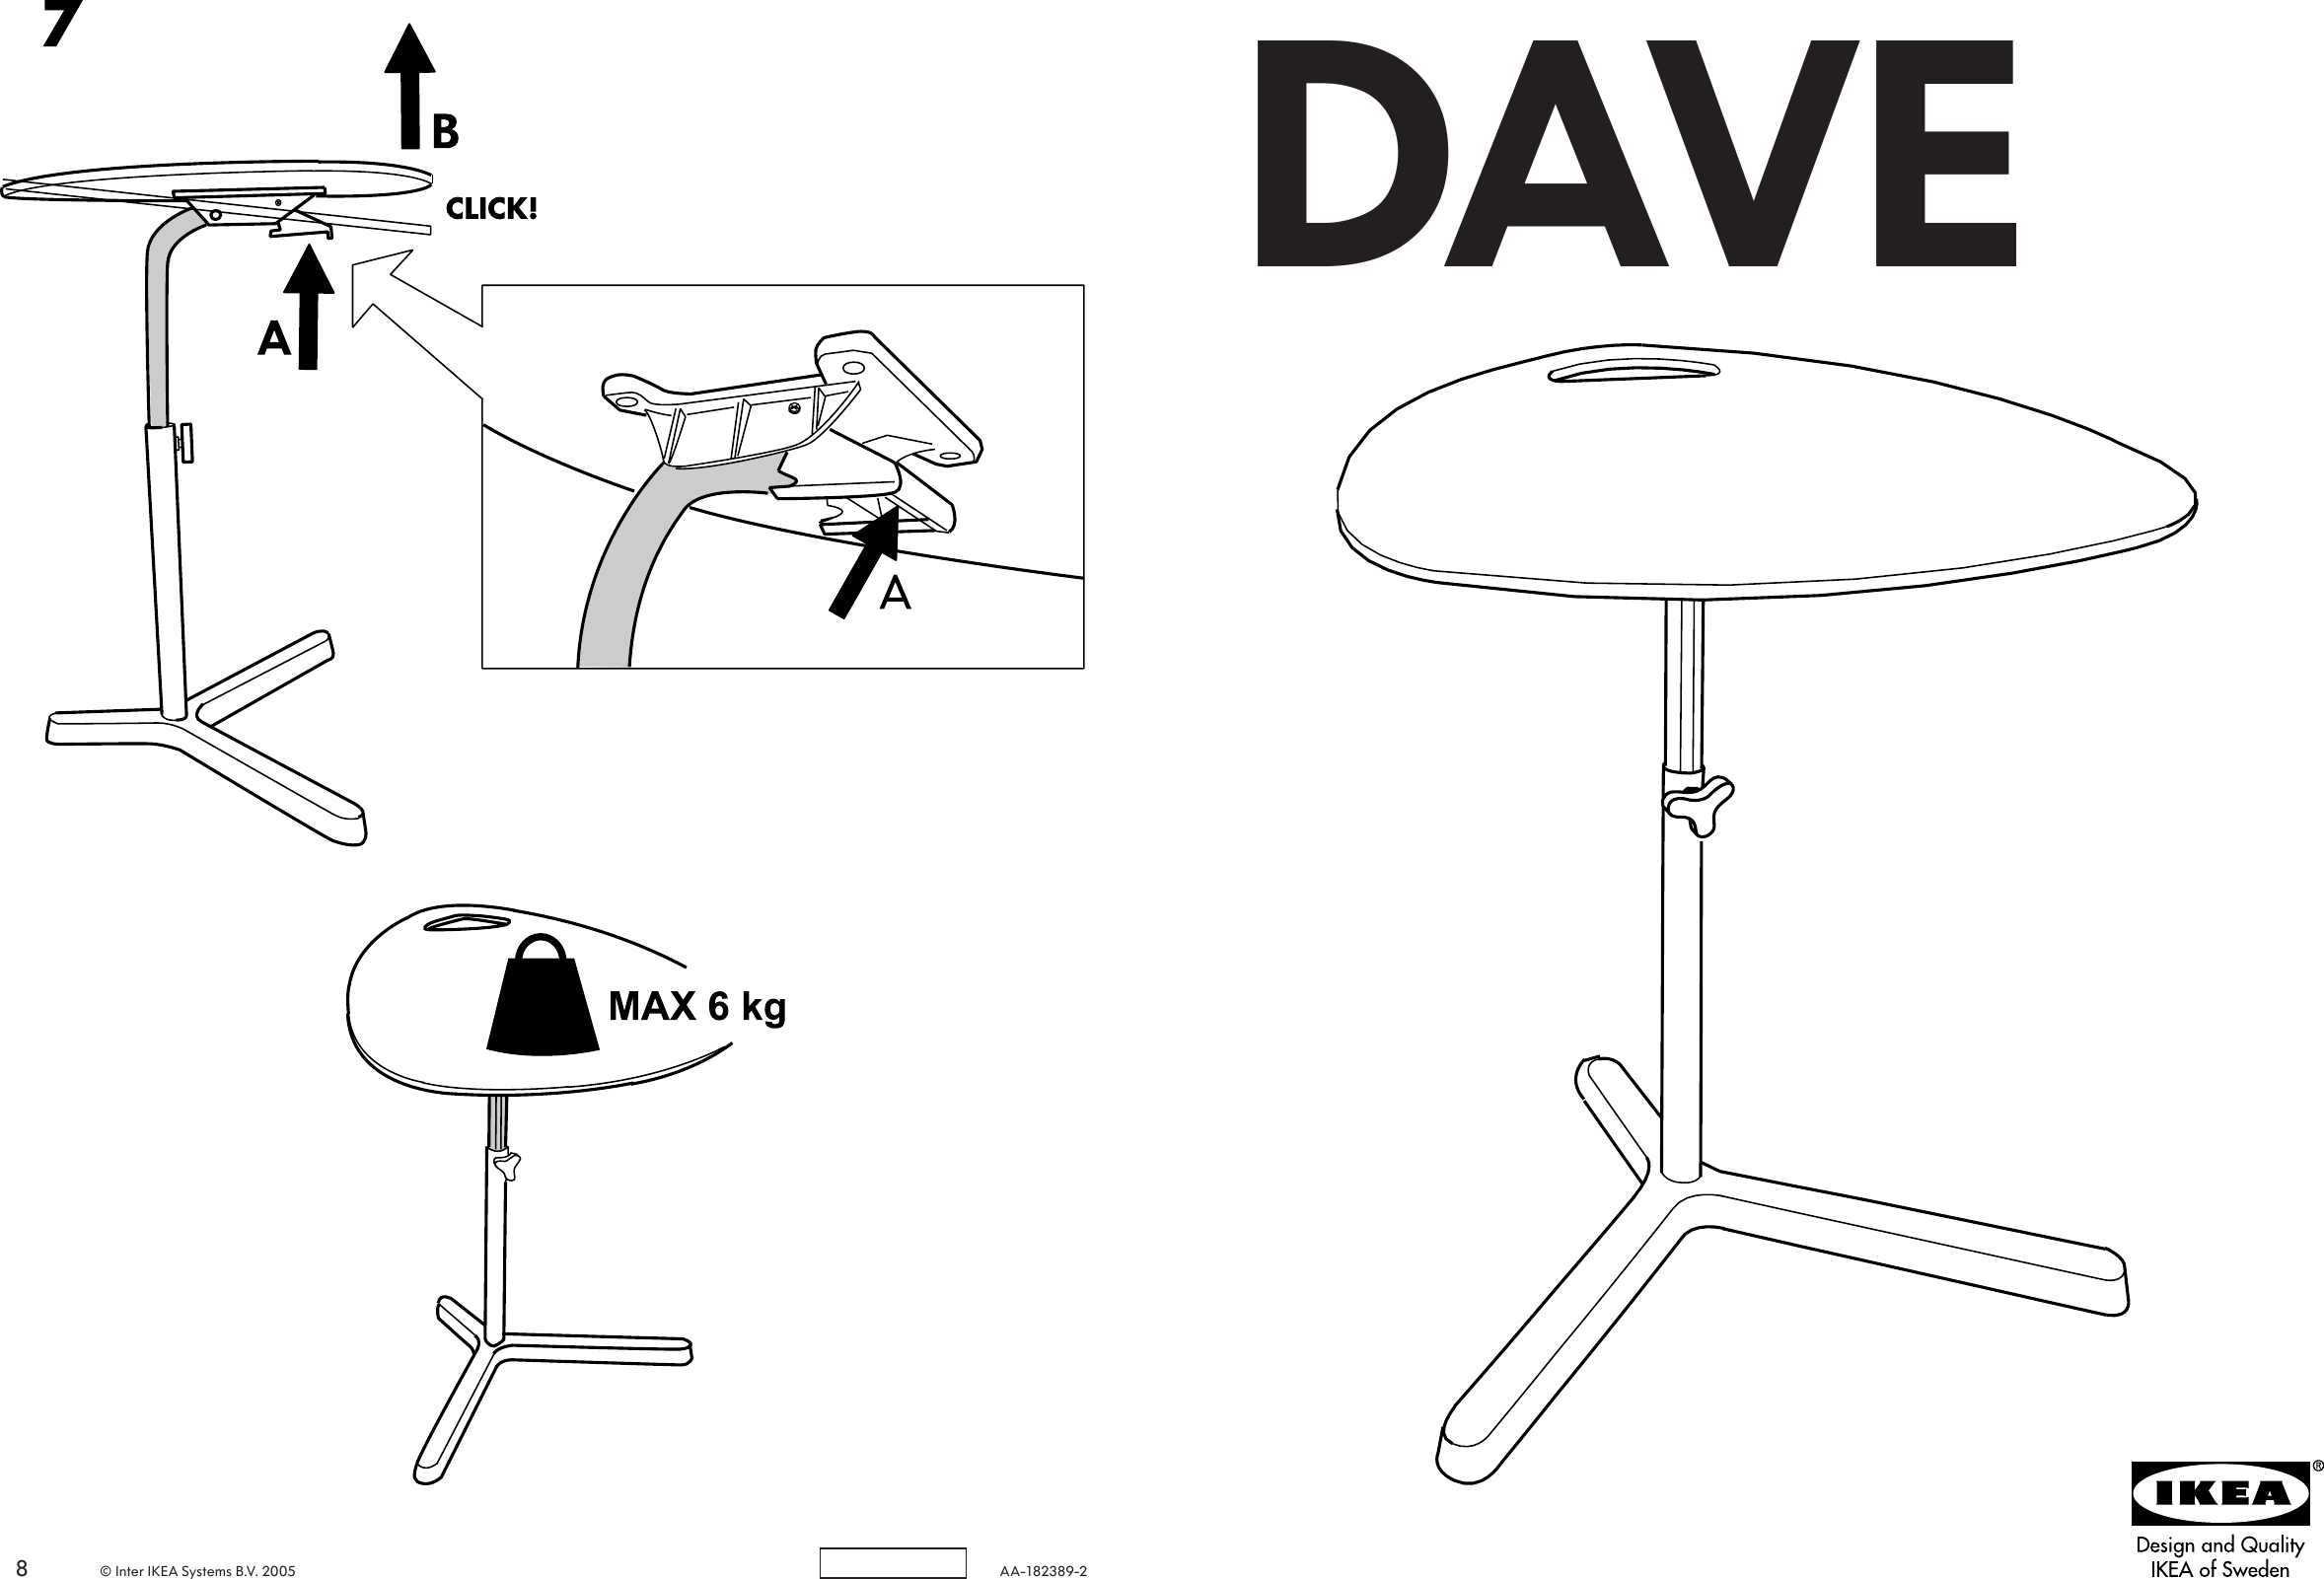 Ikea Dave Laptop Table 23 5 8x19 8